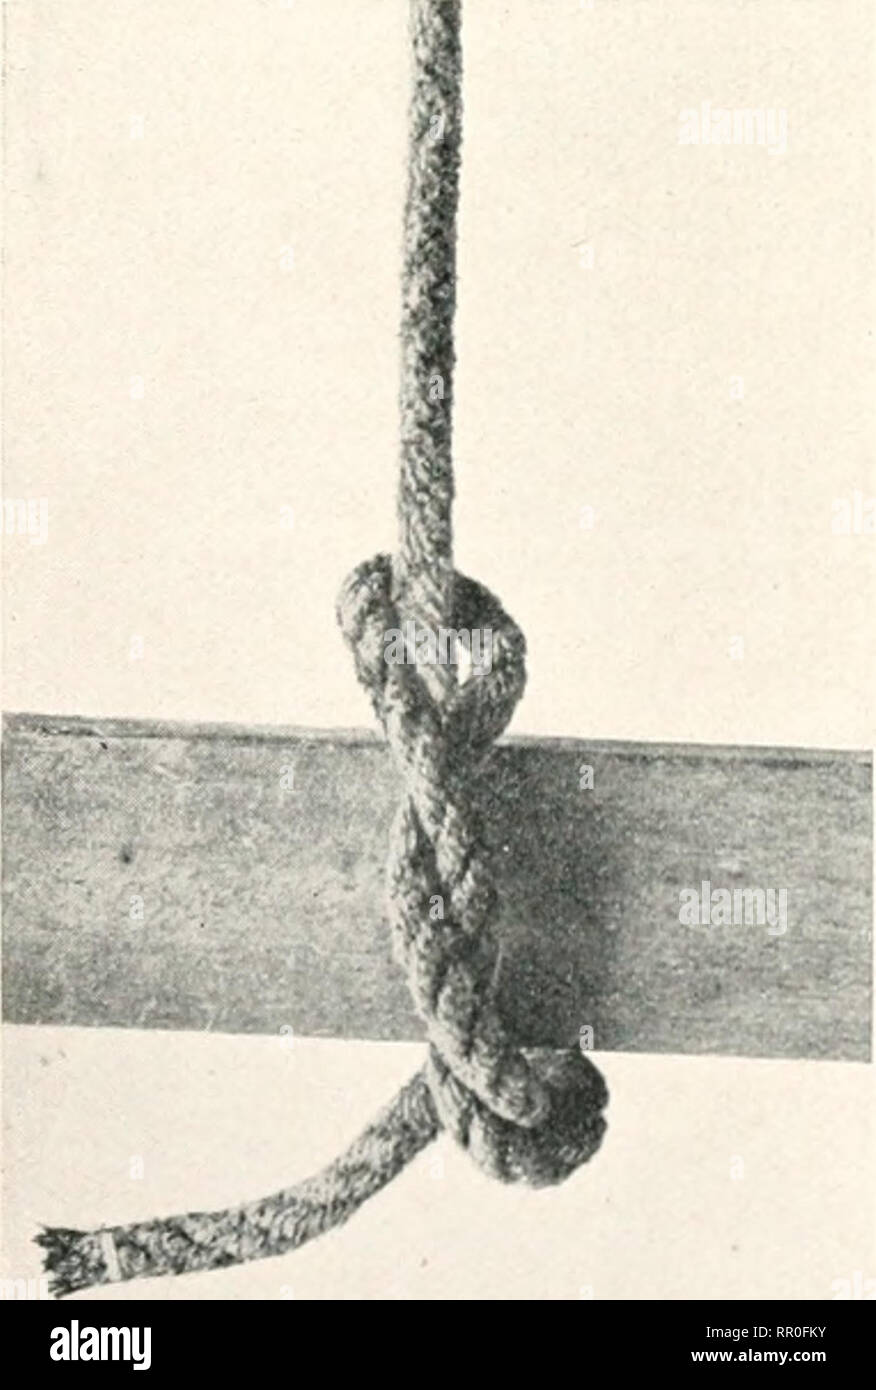 . The agricultural gazette of New South Wales. Agriculture; Agriculture -- Australia New South Wales. Fig. 5.—Clove hitch. stock. Jf a running loop is required, the running howline (Fig. 3) is a good form, as the loop vill not pinch on the rope and give trouble when in use. Tlie plain, herket, or sh^et l)end (Fig. 4), is anotlier useful knot for join- ing two ropes—especially when one end runs up to, and stops at, a puUey- hlock, there is no loose end to feed into the block and jainl) it. The clove hitch (Fig. -5) is also a useful knot for use with poles and guys. It will not slip in eitlxM-  - Stock Image